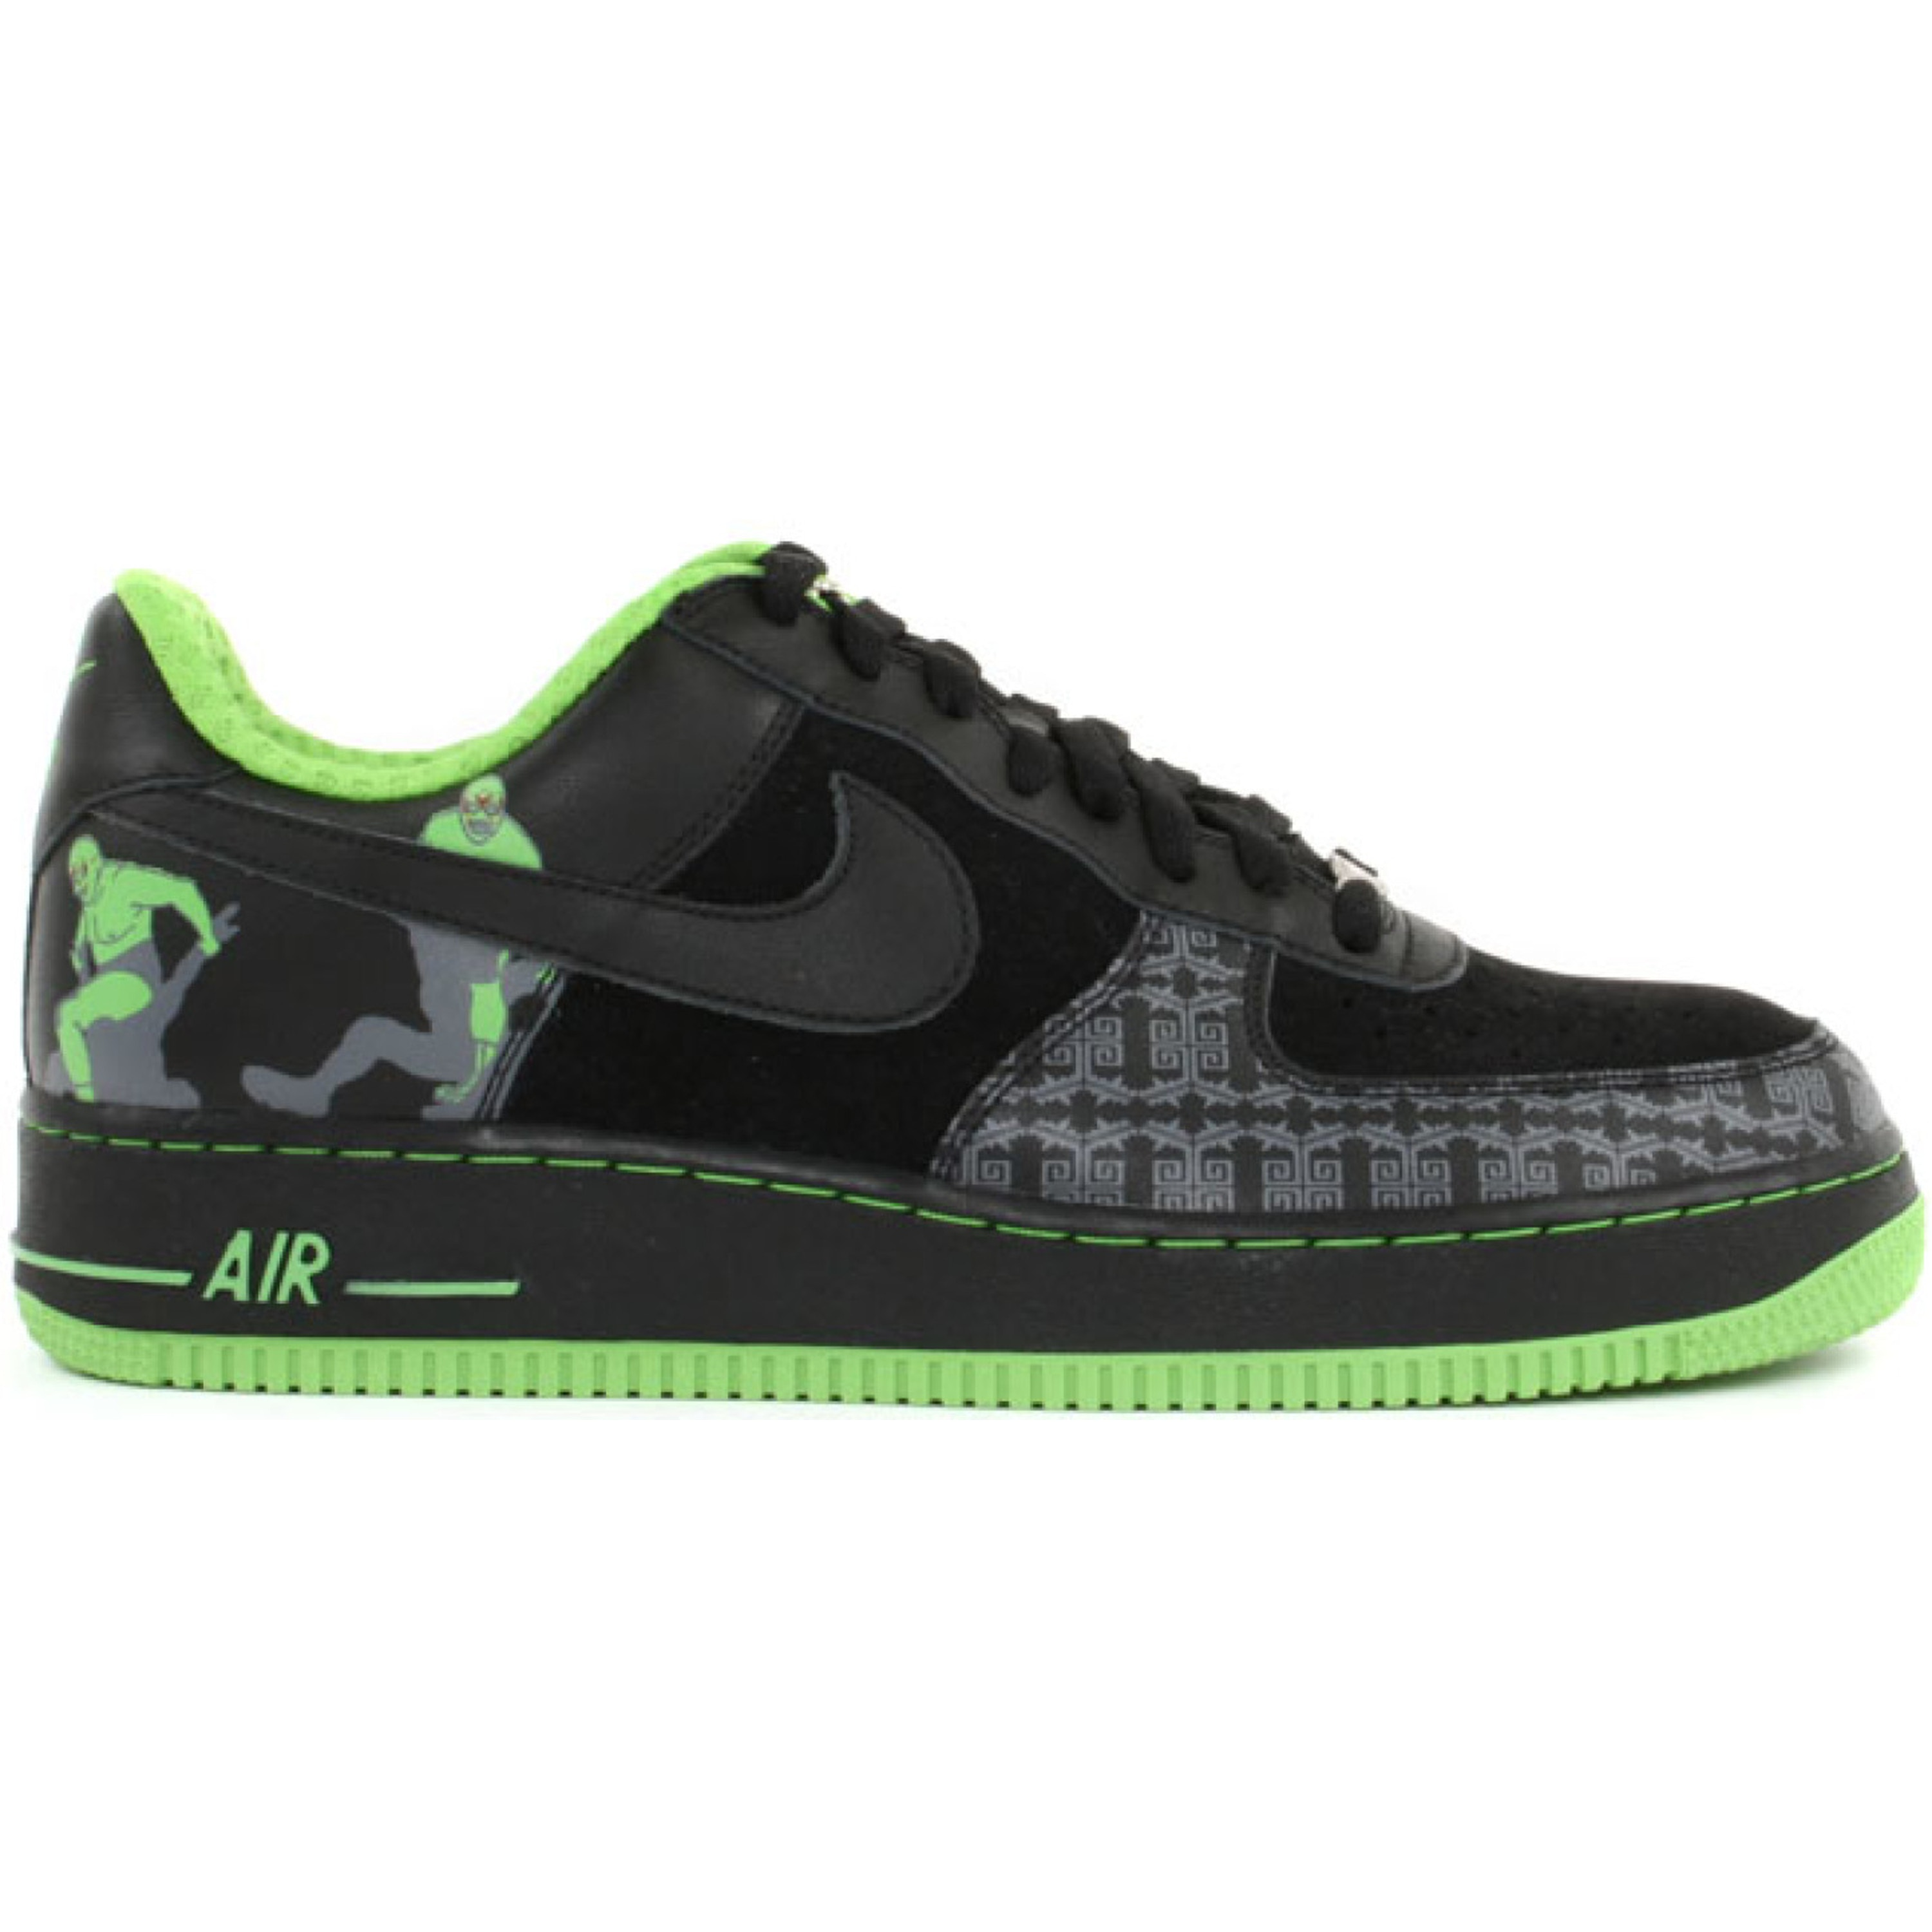 Nike Air Force 1 Low Lucha Libre (313641-002)